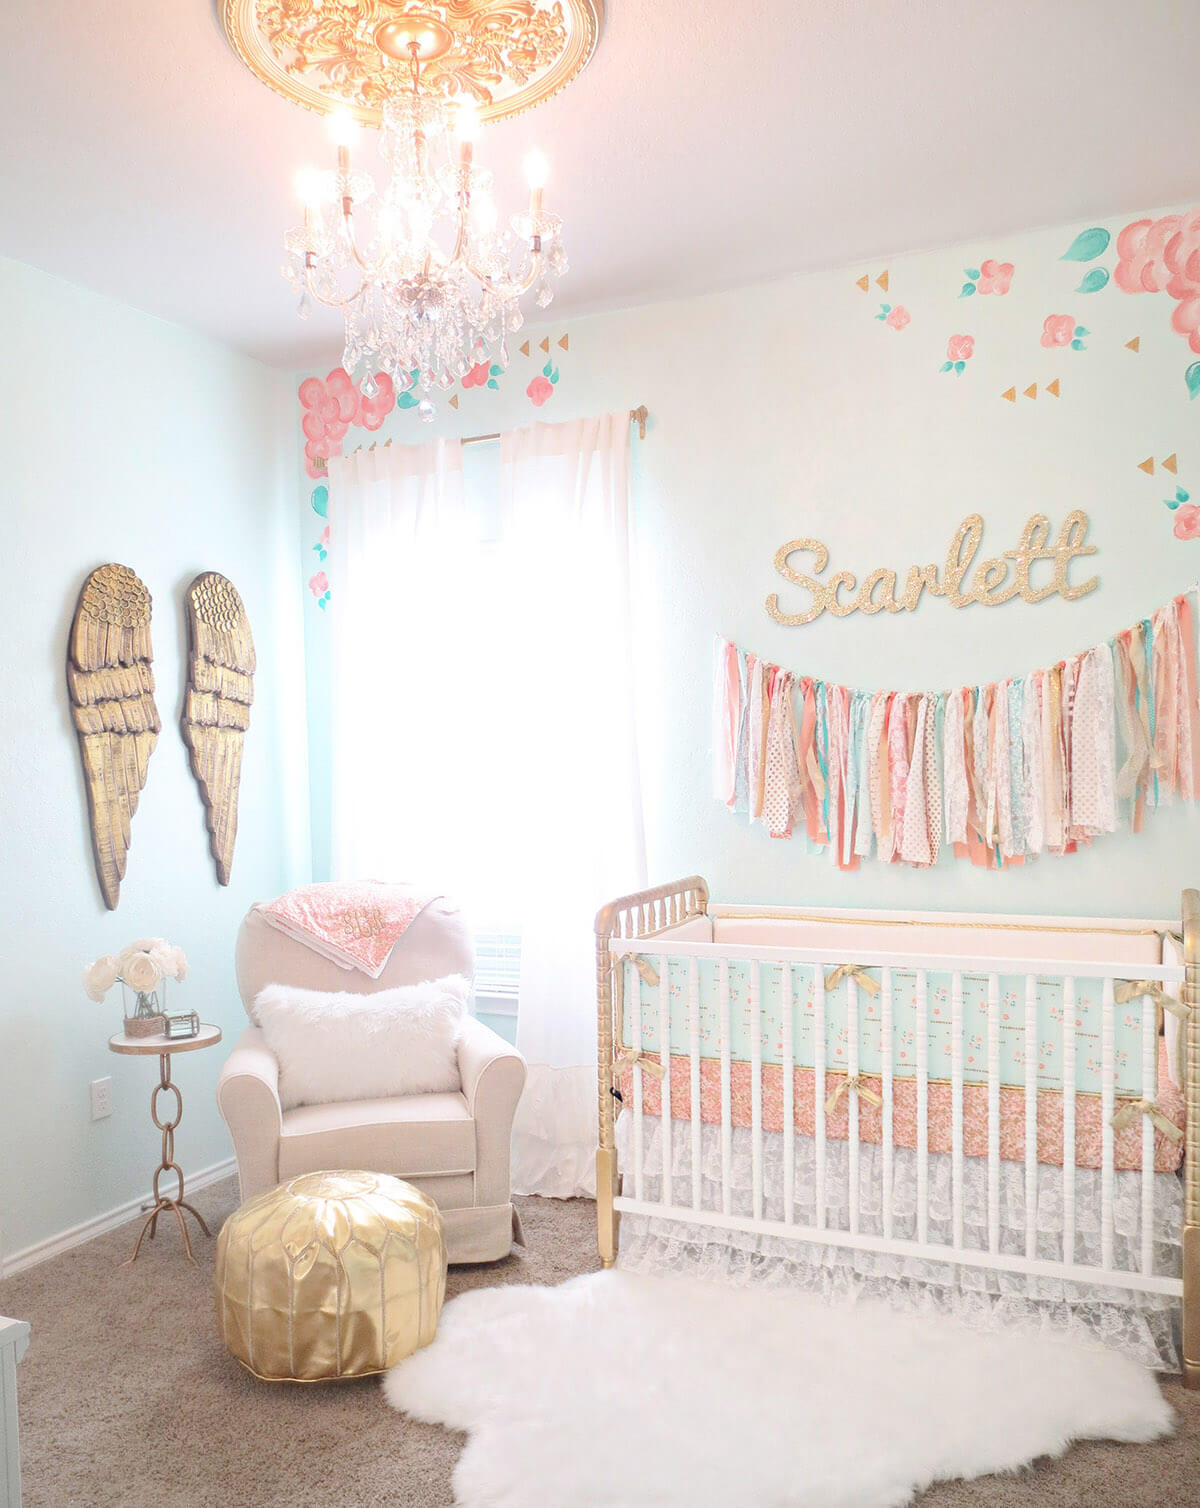 Confetti and Gold Accent an Eclectic Nursery Look